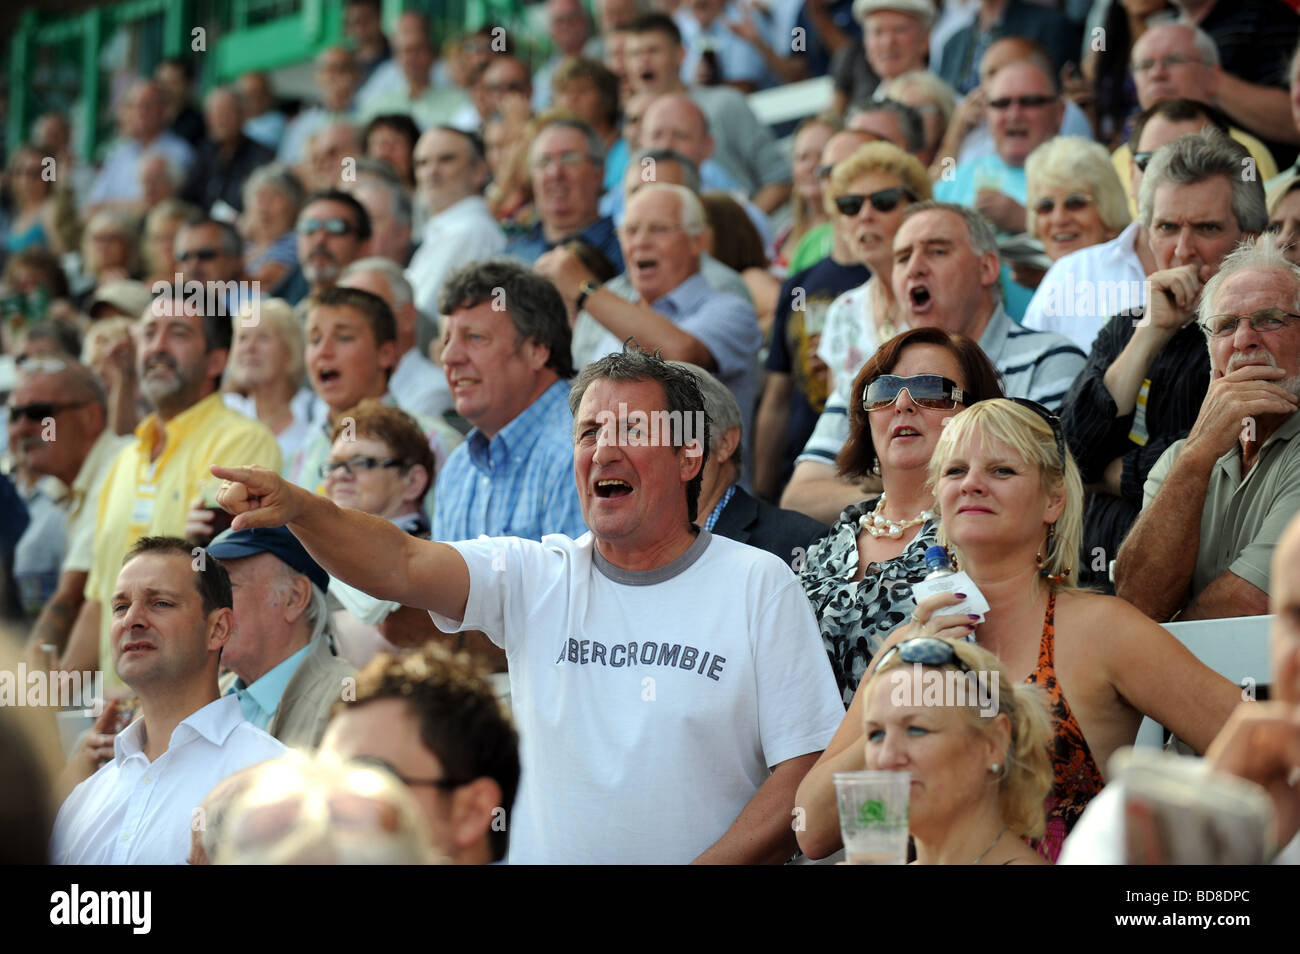 Racegoers at Brighton Races cheering on the runners and riders UK - Stock Image